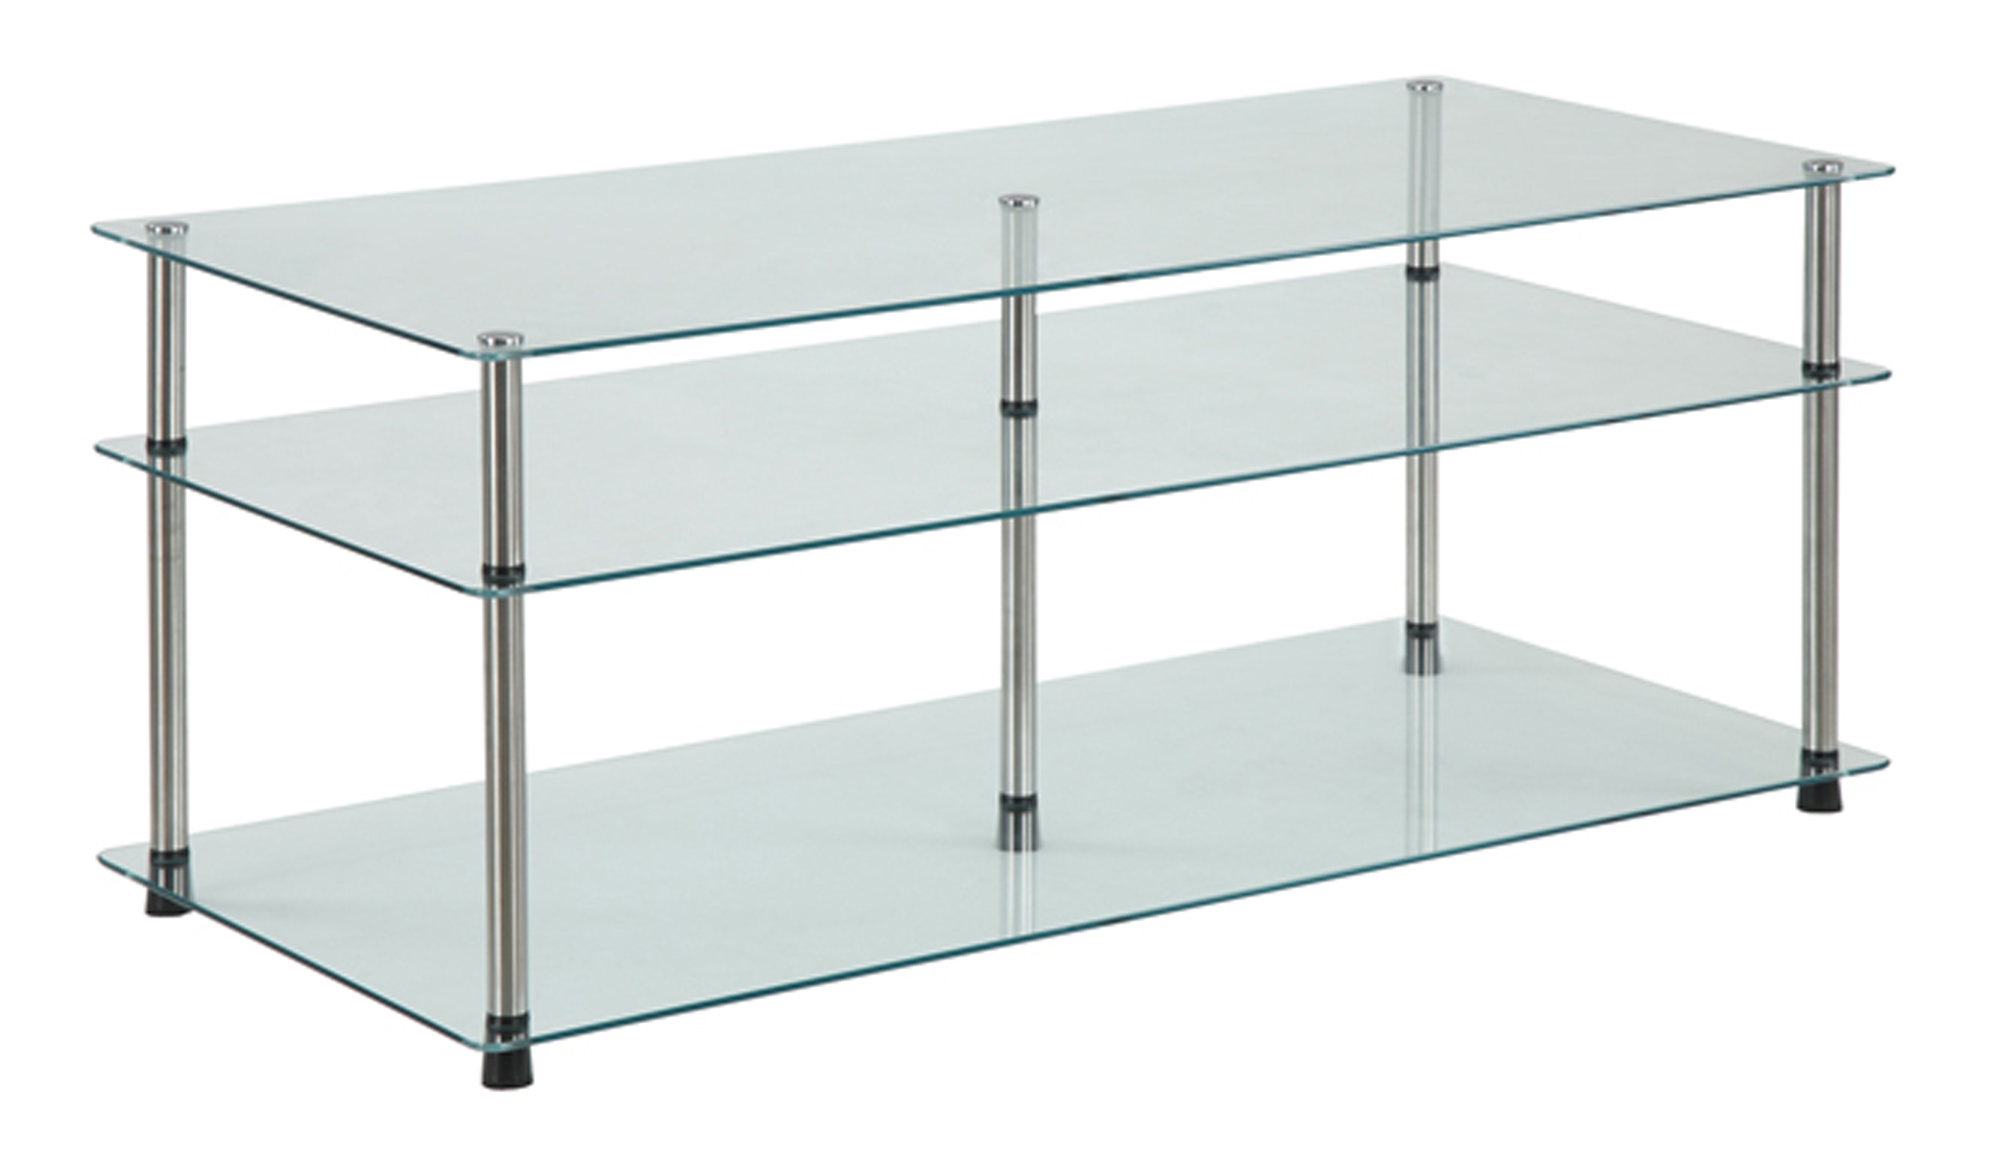 Convenience Concepts Designs2Go No Tools 3 Tier Coffee Table, Glass by Convenience Concepts Inc